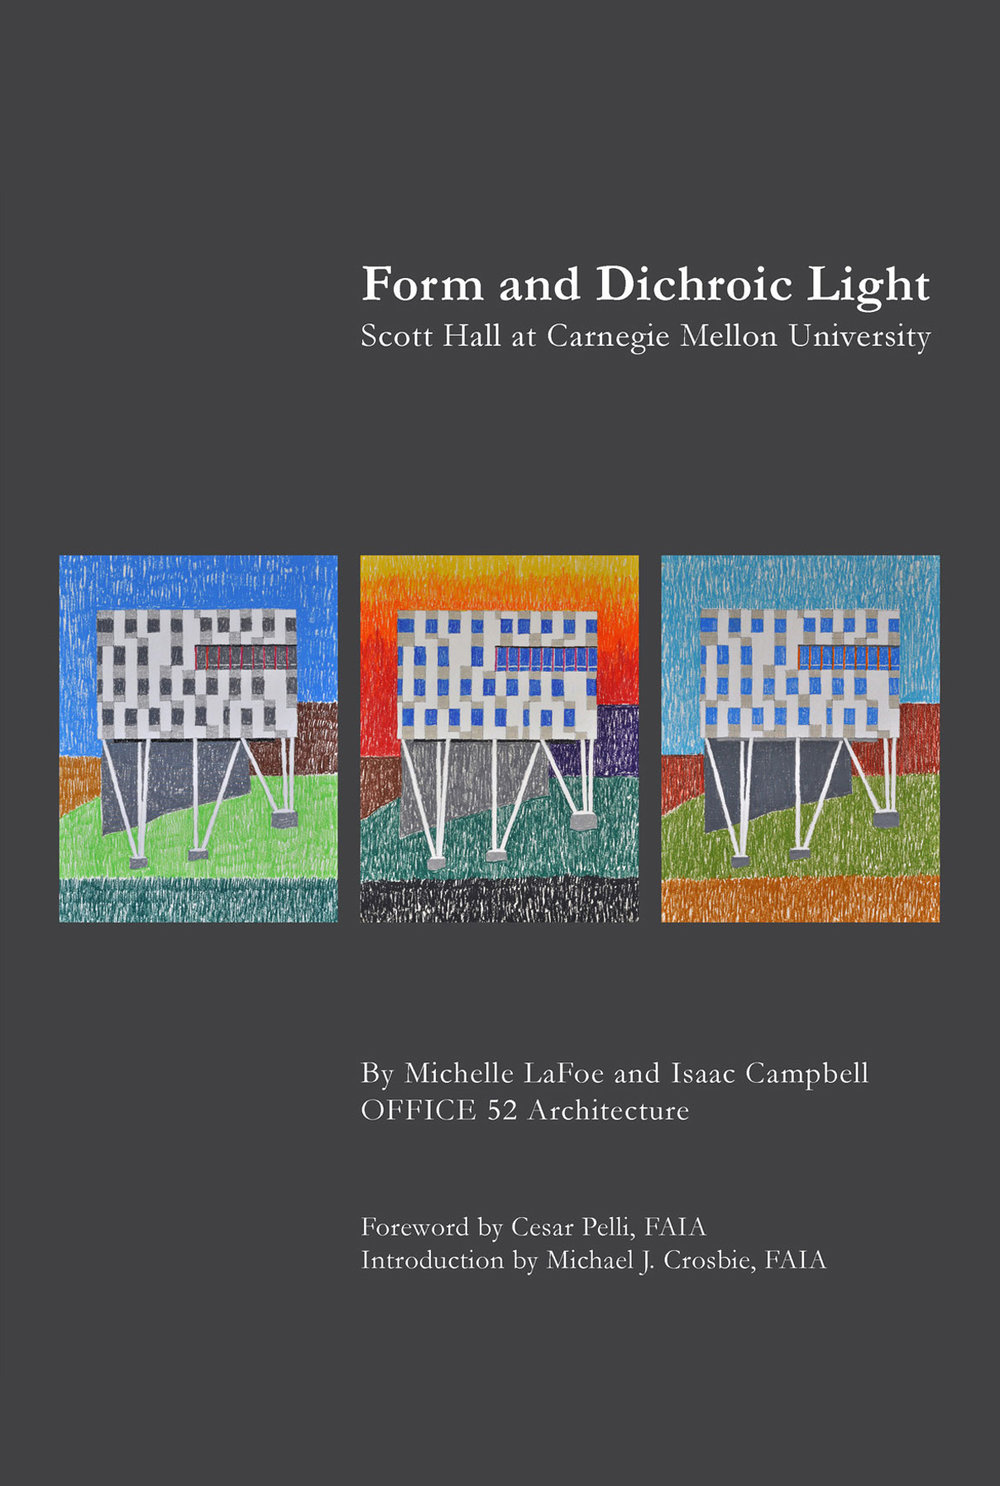 Form-Dichroic-Light.jpg